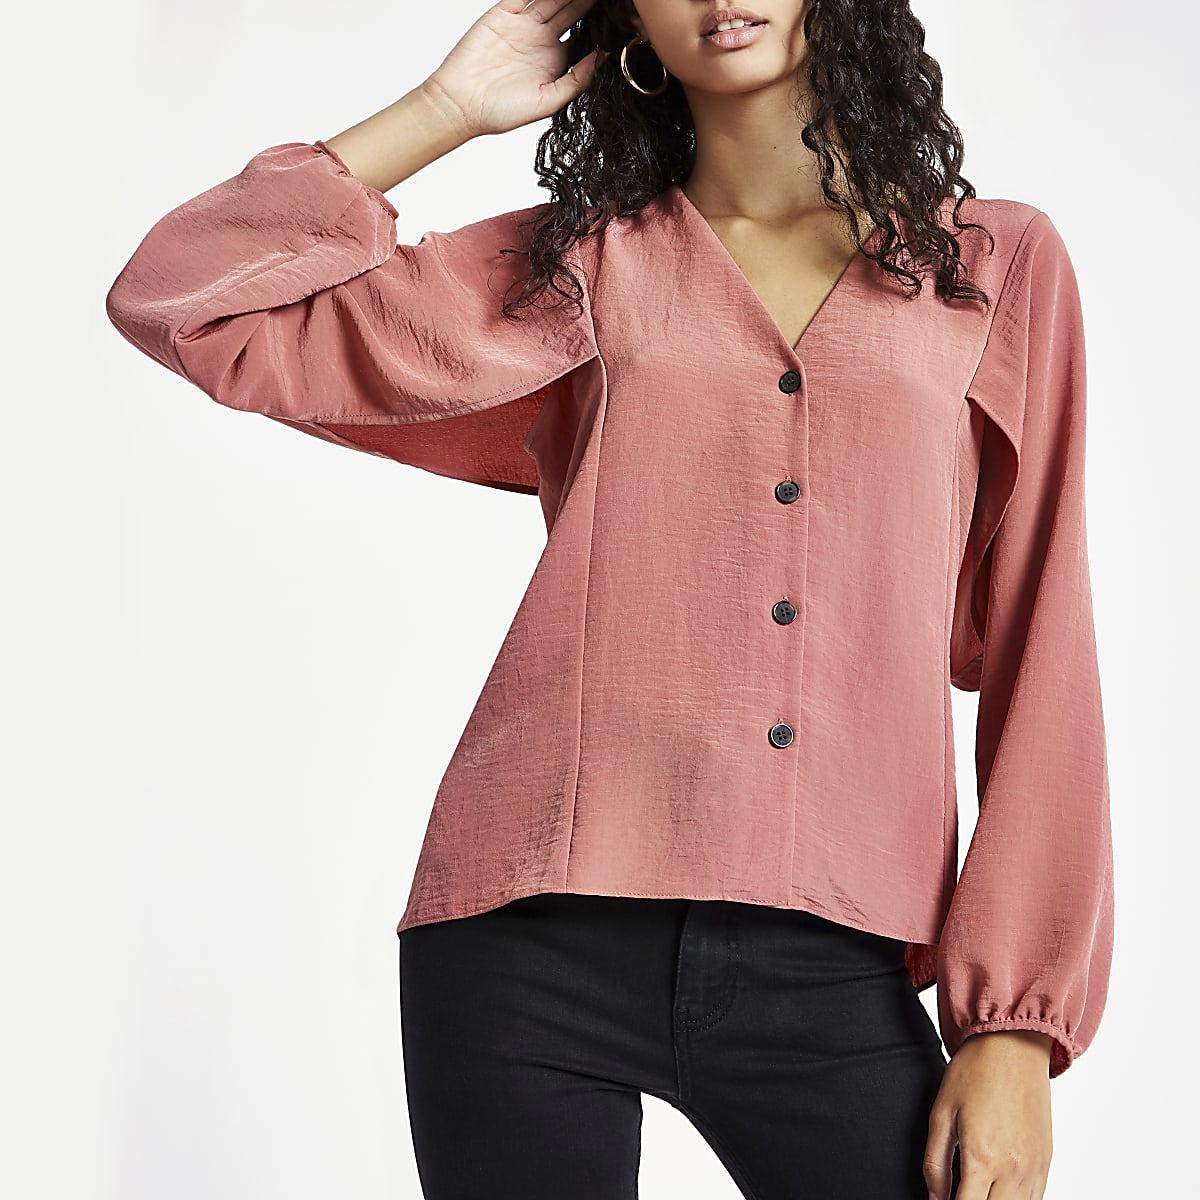 Pink button up v neck blouse